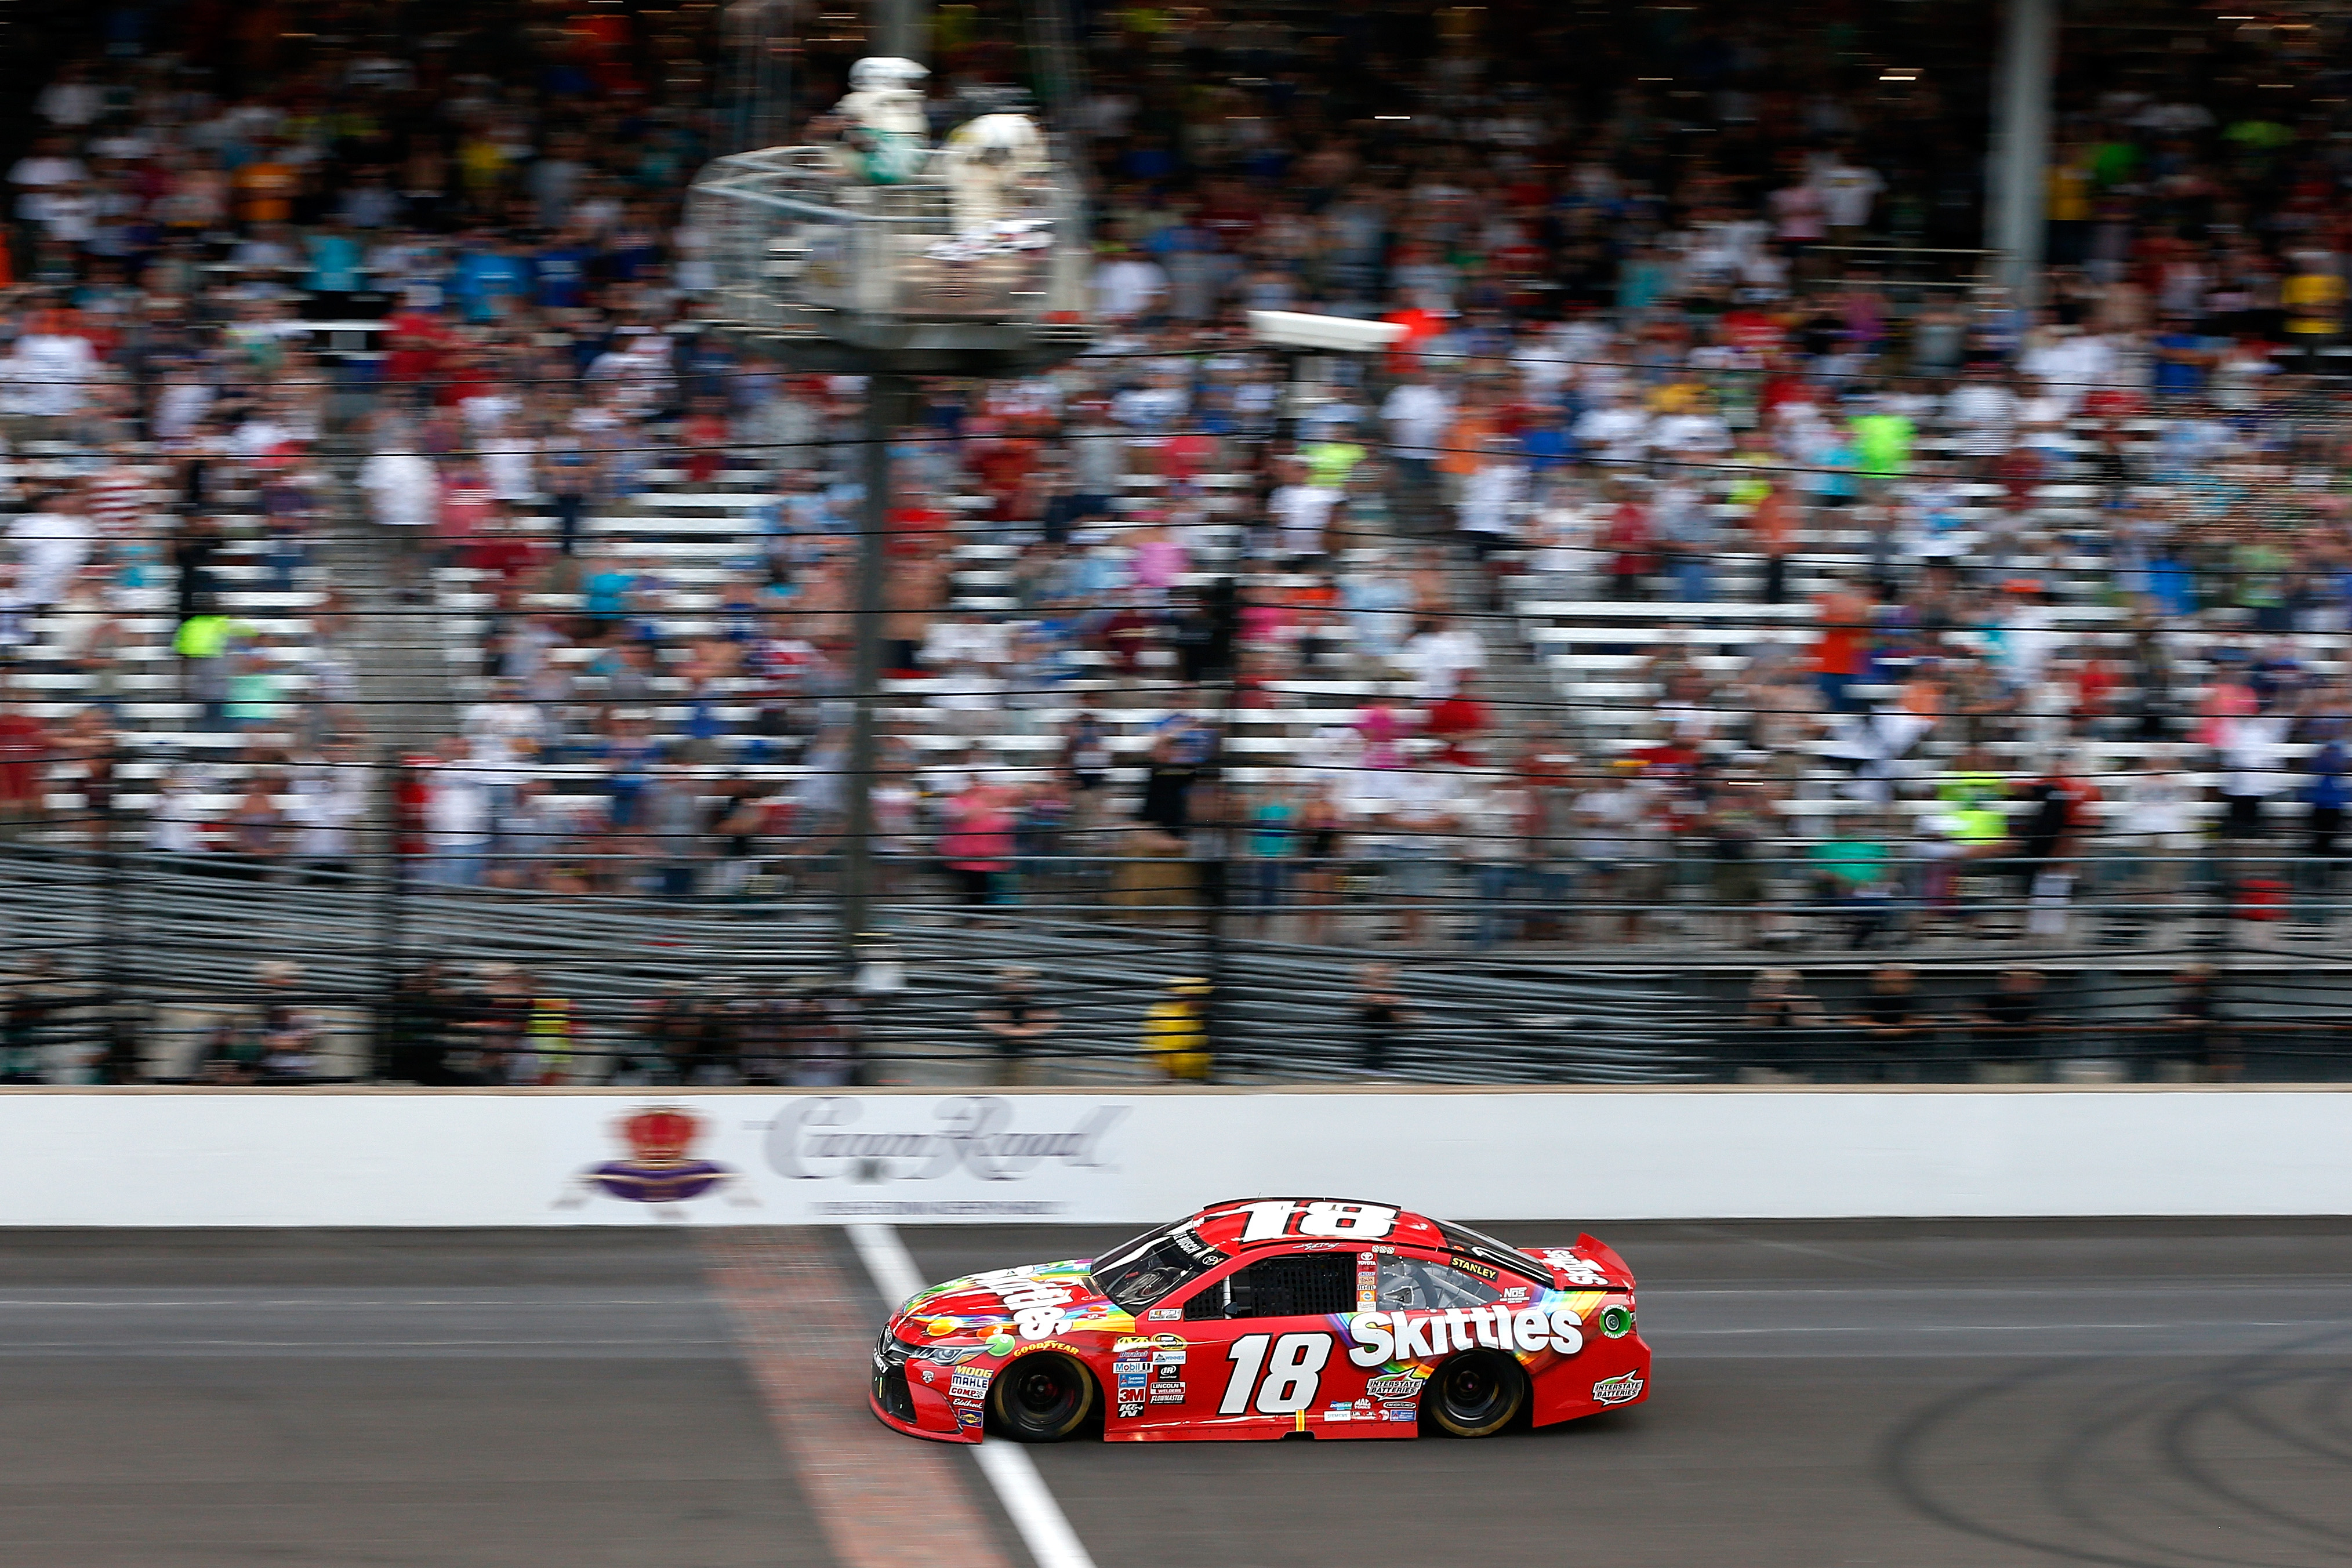 The stands were not full in Indianapolis as Kyle Busch wins at the Brickyard.